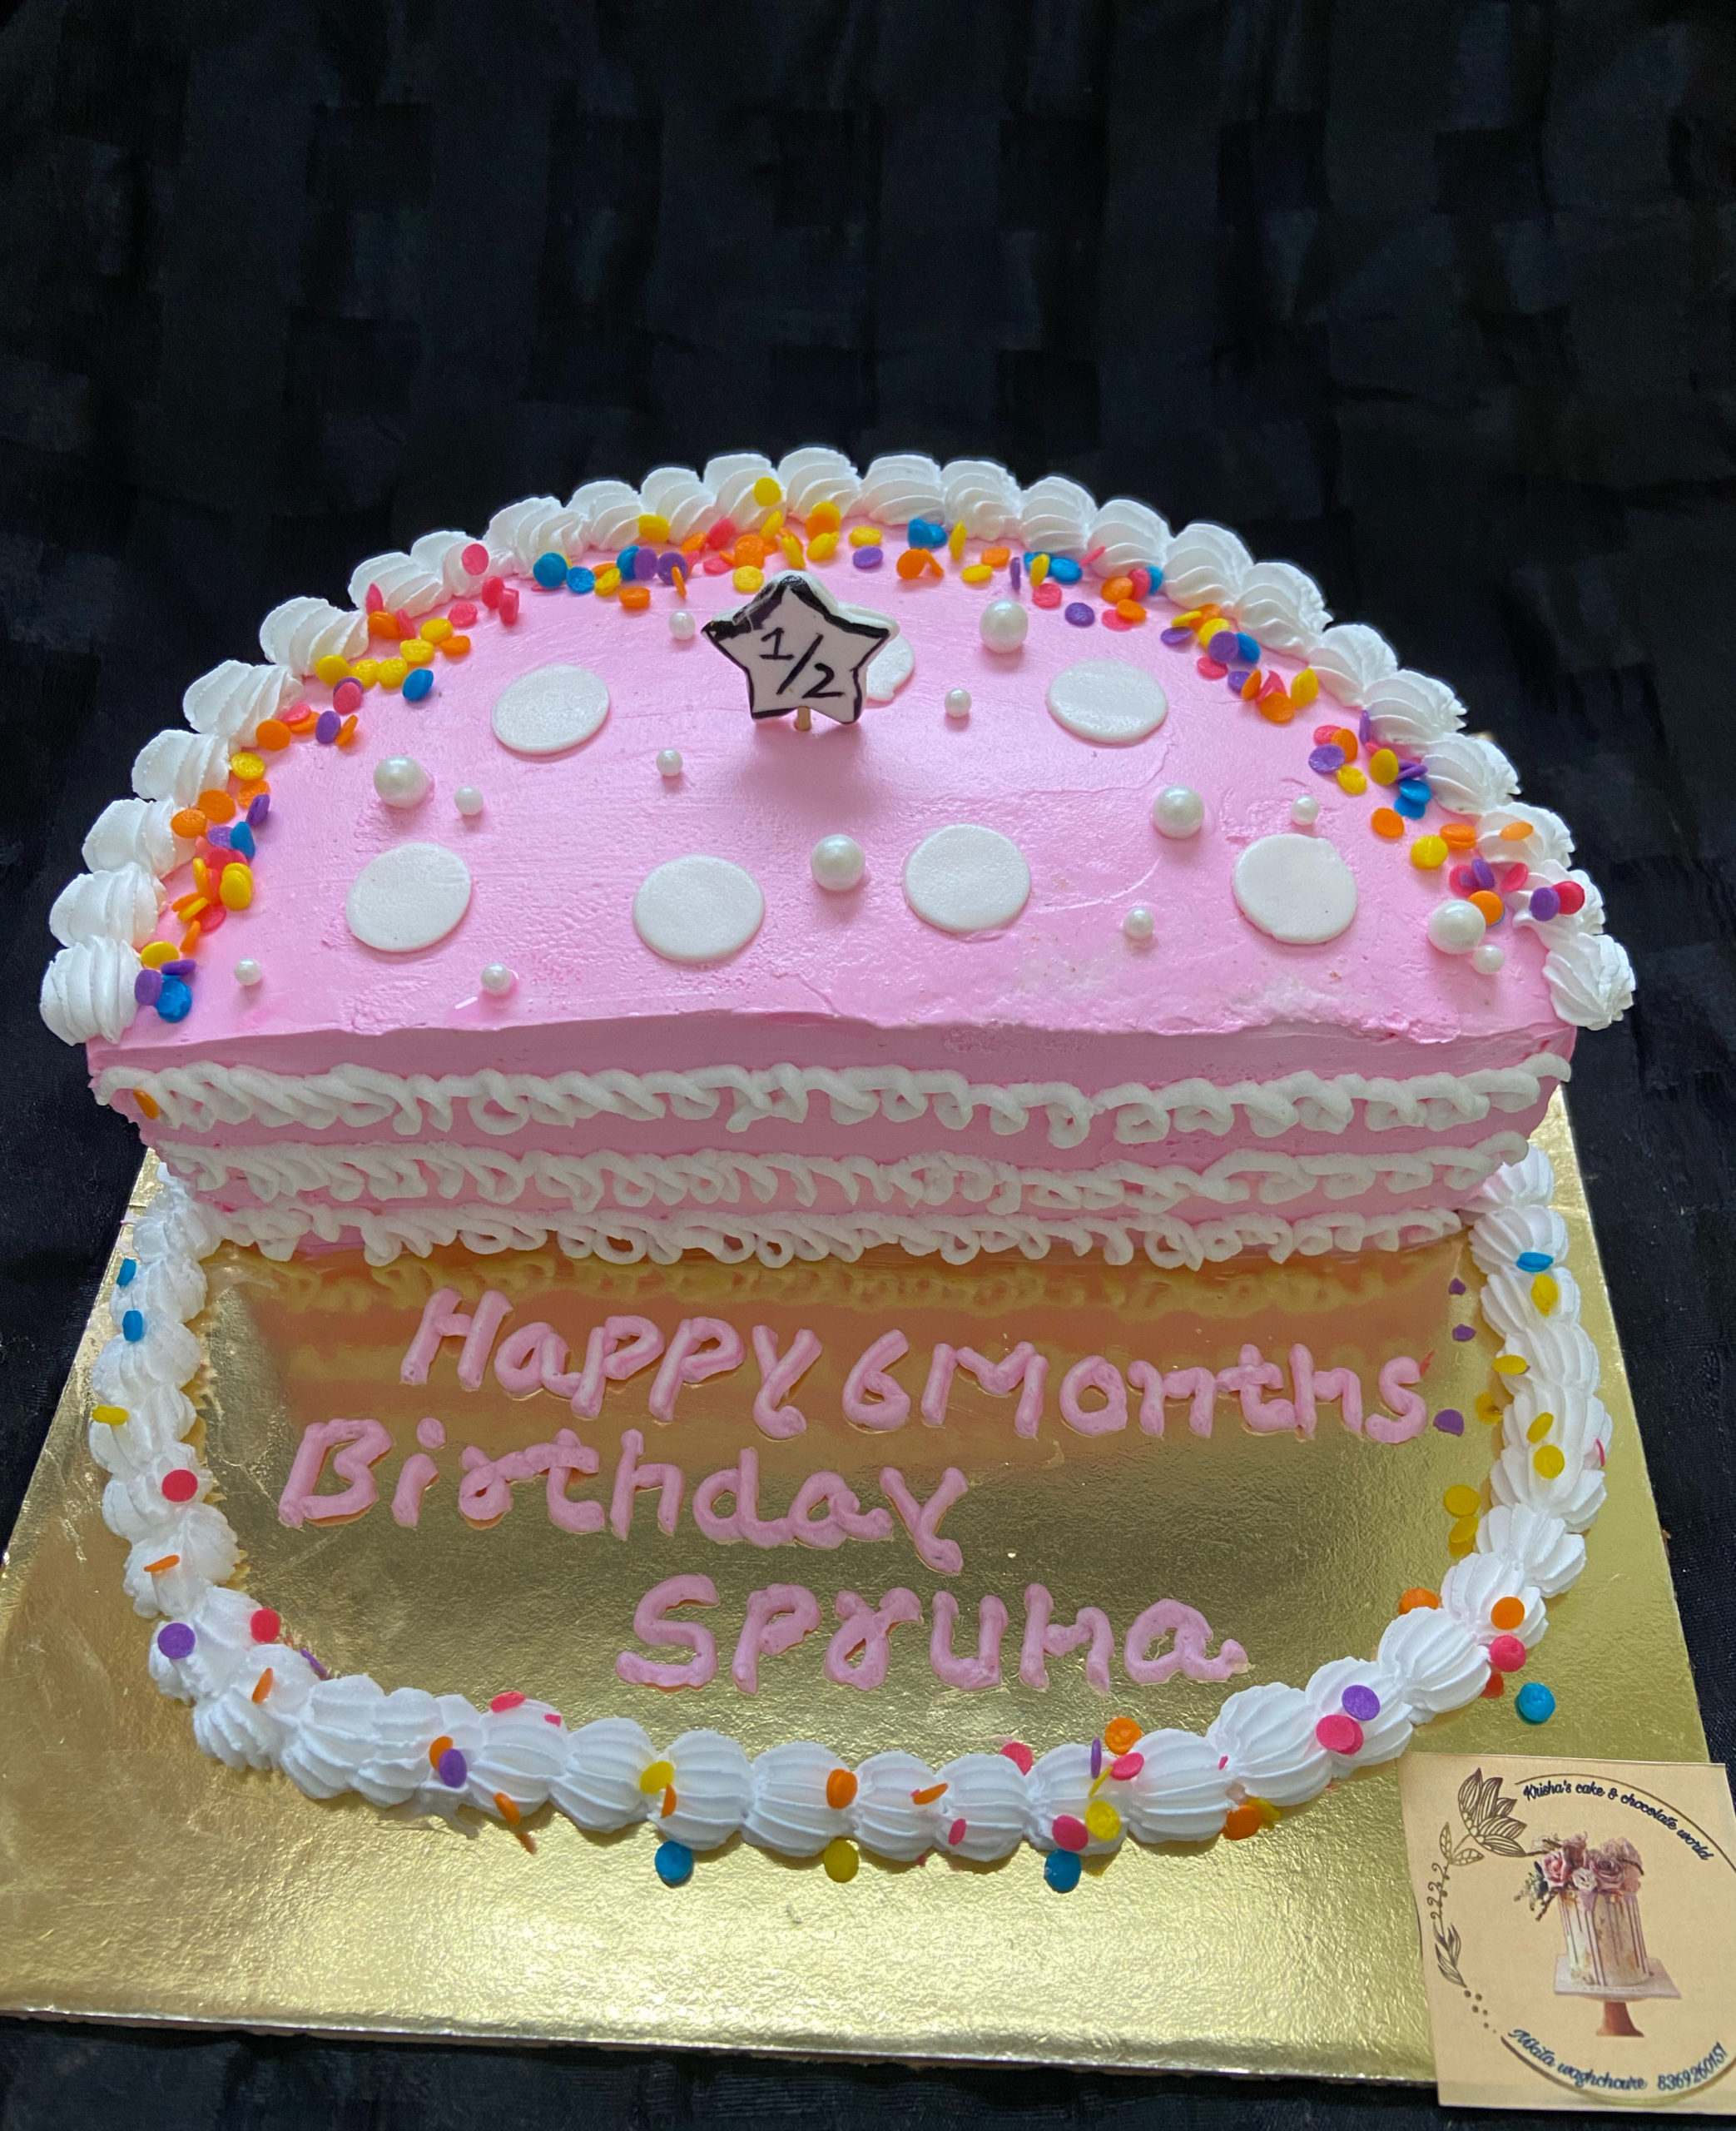 Six Months Birthday Cake Designs, Images, Price Near Me